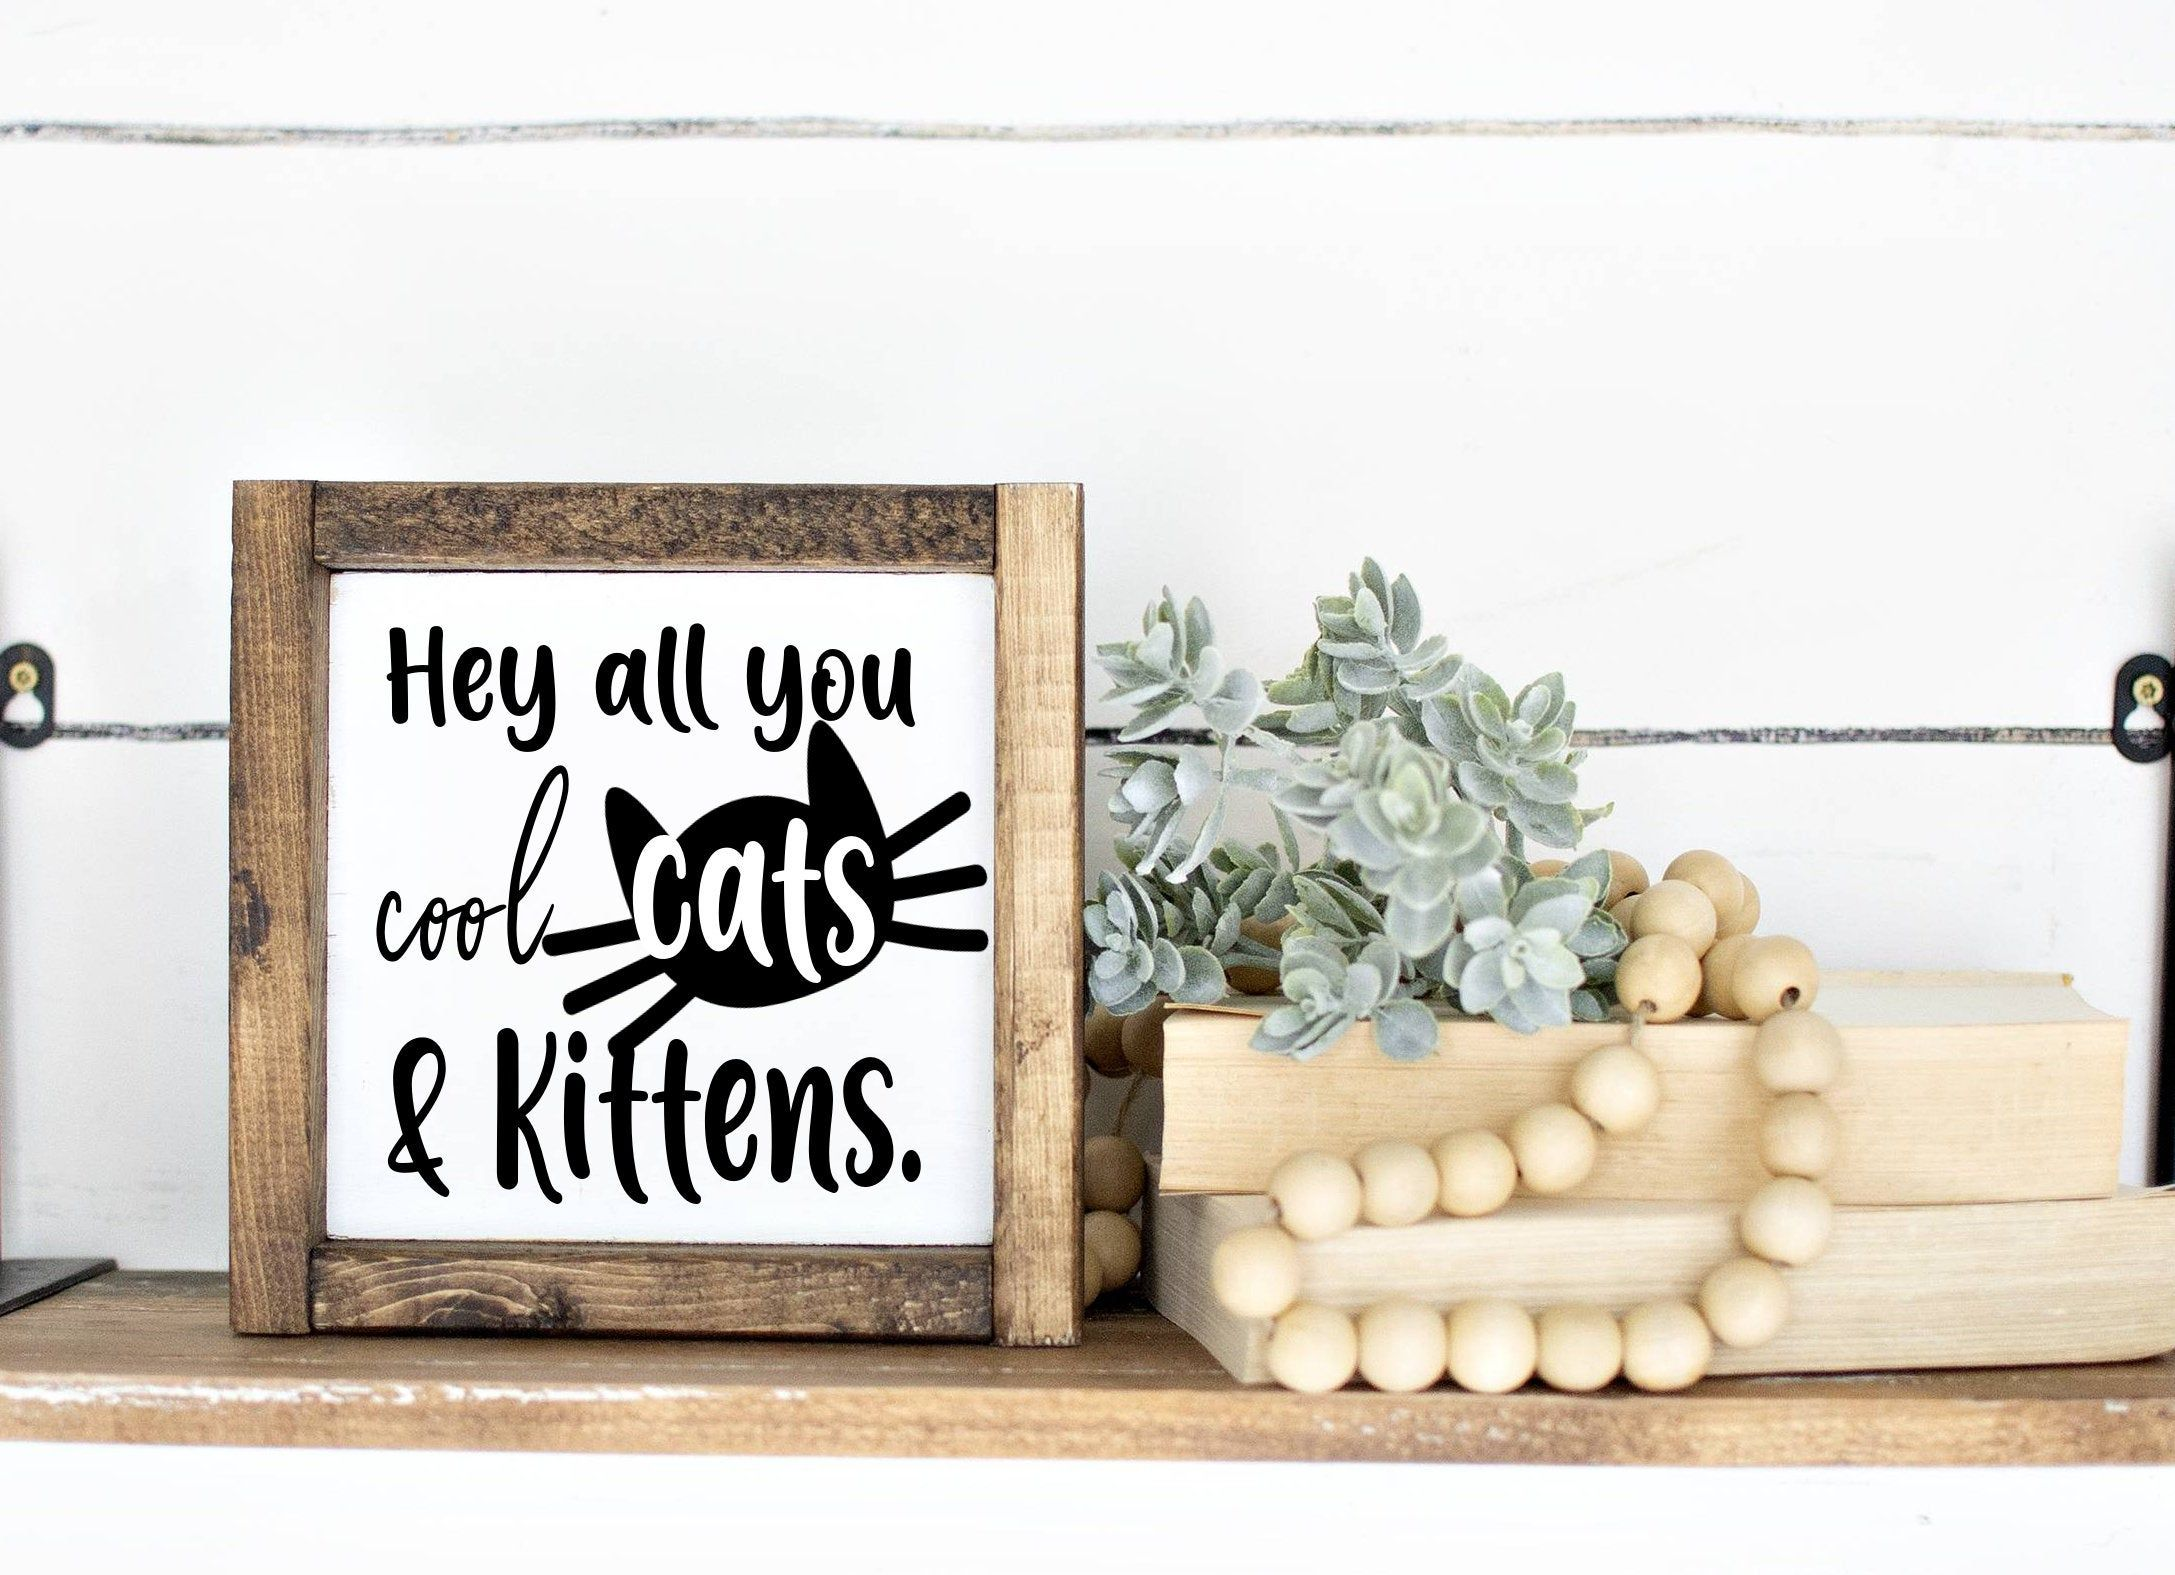 Hey All You Cool Cats And Kittens Tiger King Funny Sign Carole Baskin Wood Sign Funny Farmhouse Sign Cat Sign Funny Wood Sign Funny Wood Signs Family Wood Signs Cat Signs